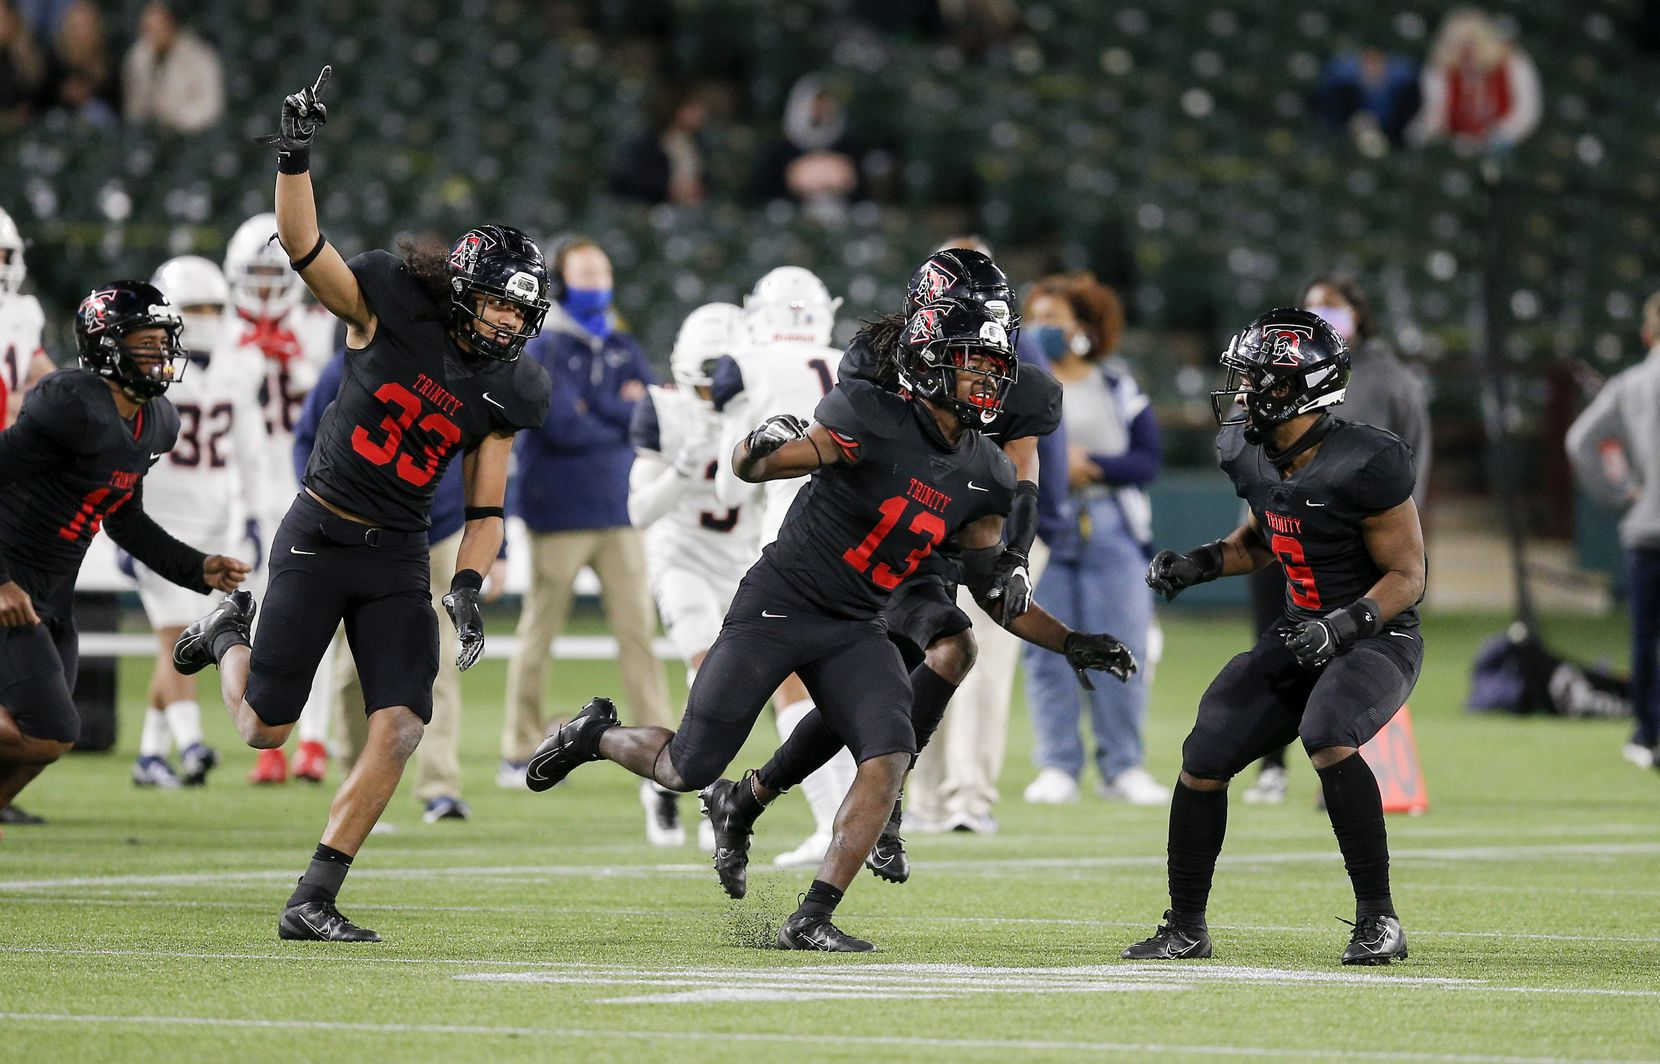 Euless Trinity junior defensive back Jacob Schaeffer (13) celebrates intercepting a pass during the second half of a high school Class 6A Division I Region I semifinal football game against Allen at Globe Life Park in Arlington, Saturday, December 26, 2020. Trinity won 49-45. (Brandon Wade/Special Contributor)